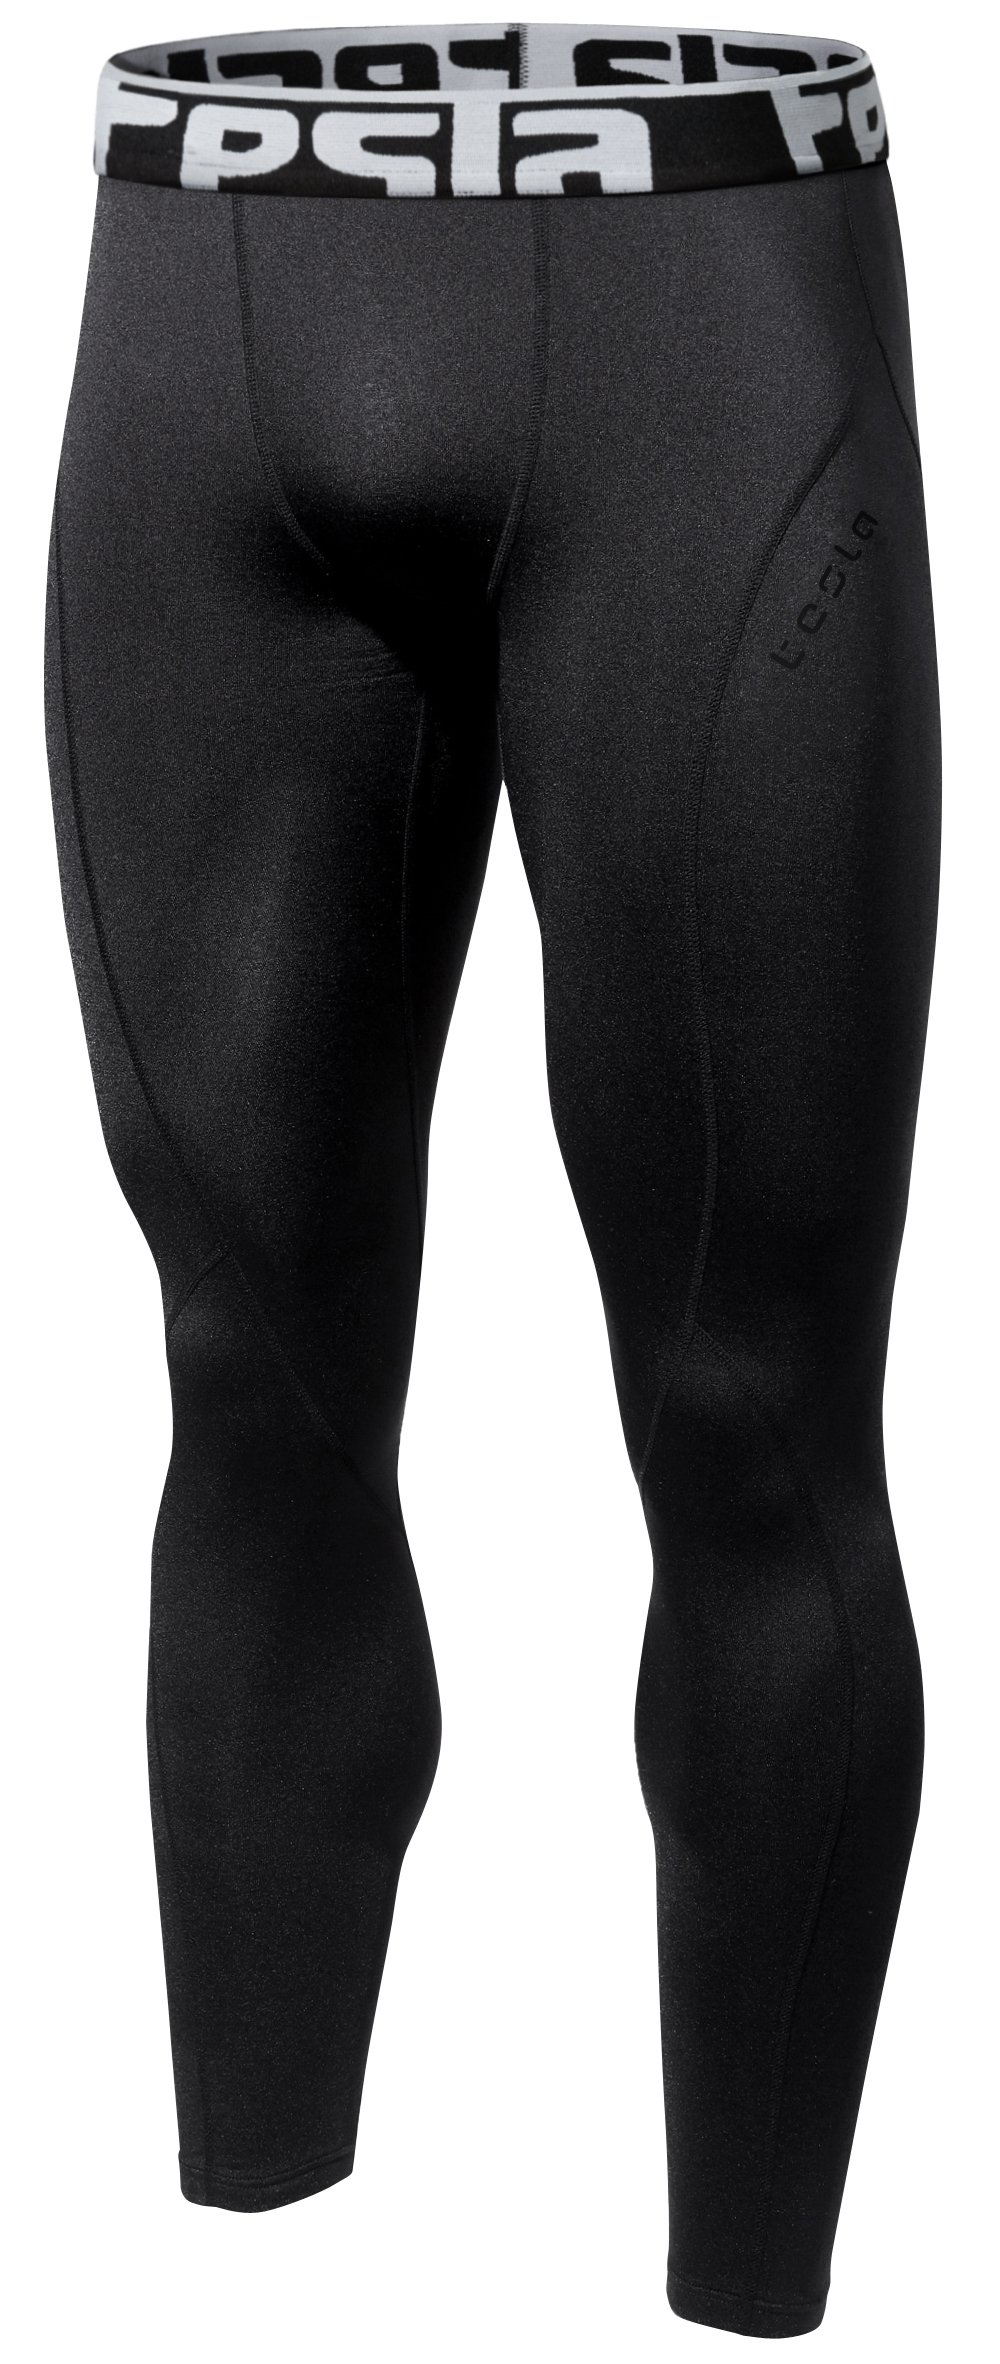 TSLA Men's Thermal Wintergear Compression Baselayer